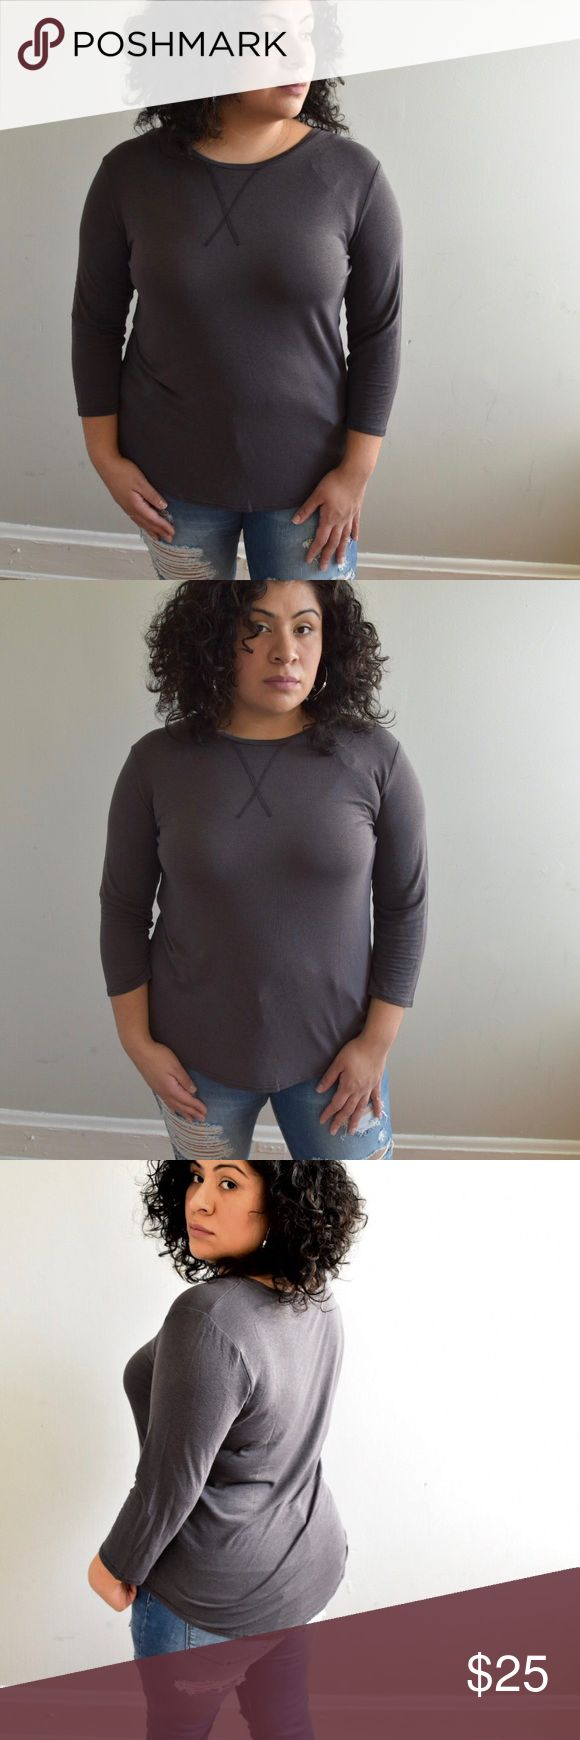 """Charcoal 3/4 Sleeve Top Charcoal Color Top. 3/4"""" sleeves. This is a light fabric, perfect for spring or a cool summer night.  True to size. I am a size 14 modeling size large. Prices are firm unless bundled! Please ask questions if you have any 🤗  Fabric: 65% Cotton 35% Polyester Soft and has some stretch to it. Available in S M L in separate listings.   Measurements: S : Bust 18"""" / Length F 24"""" B 26"""" M : Bust 20"""" / Length F 26 B 28"""" L : Bust 22"""" / Length F 28"""" B 30"""" Onlo Tops"""